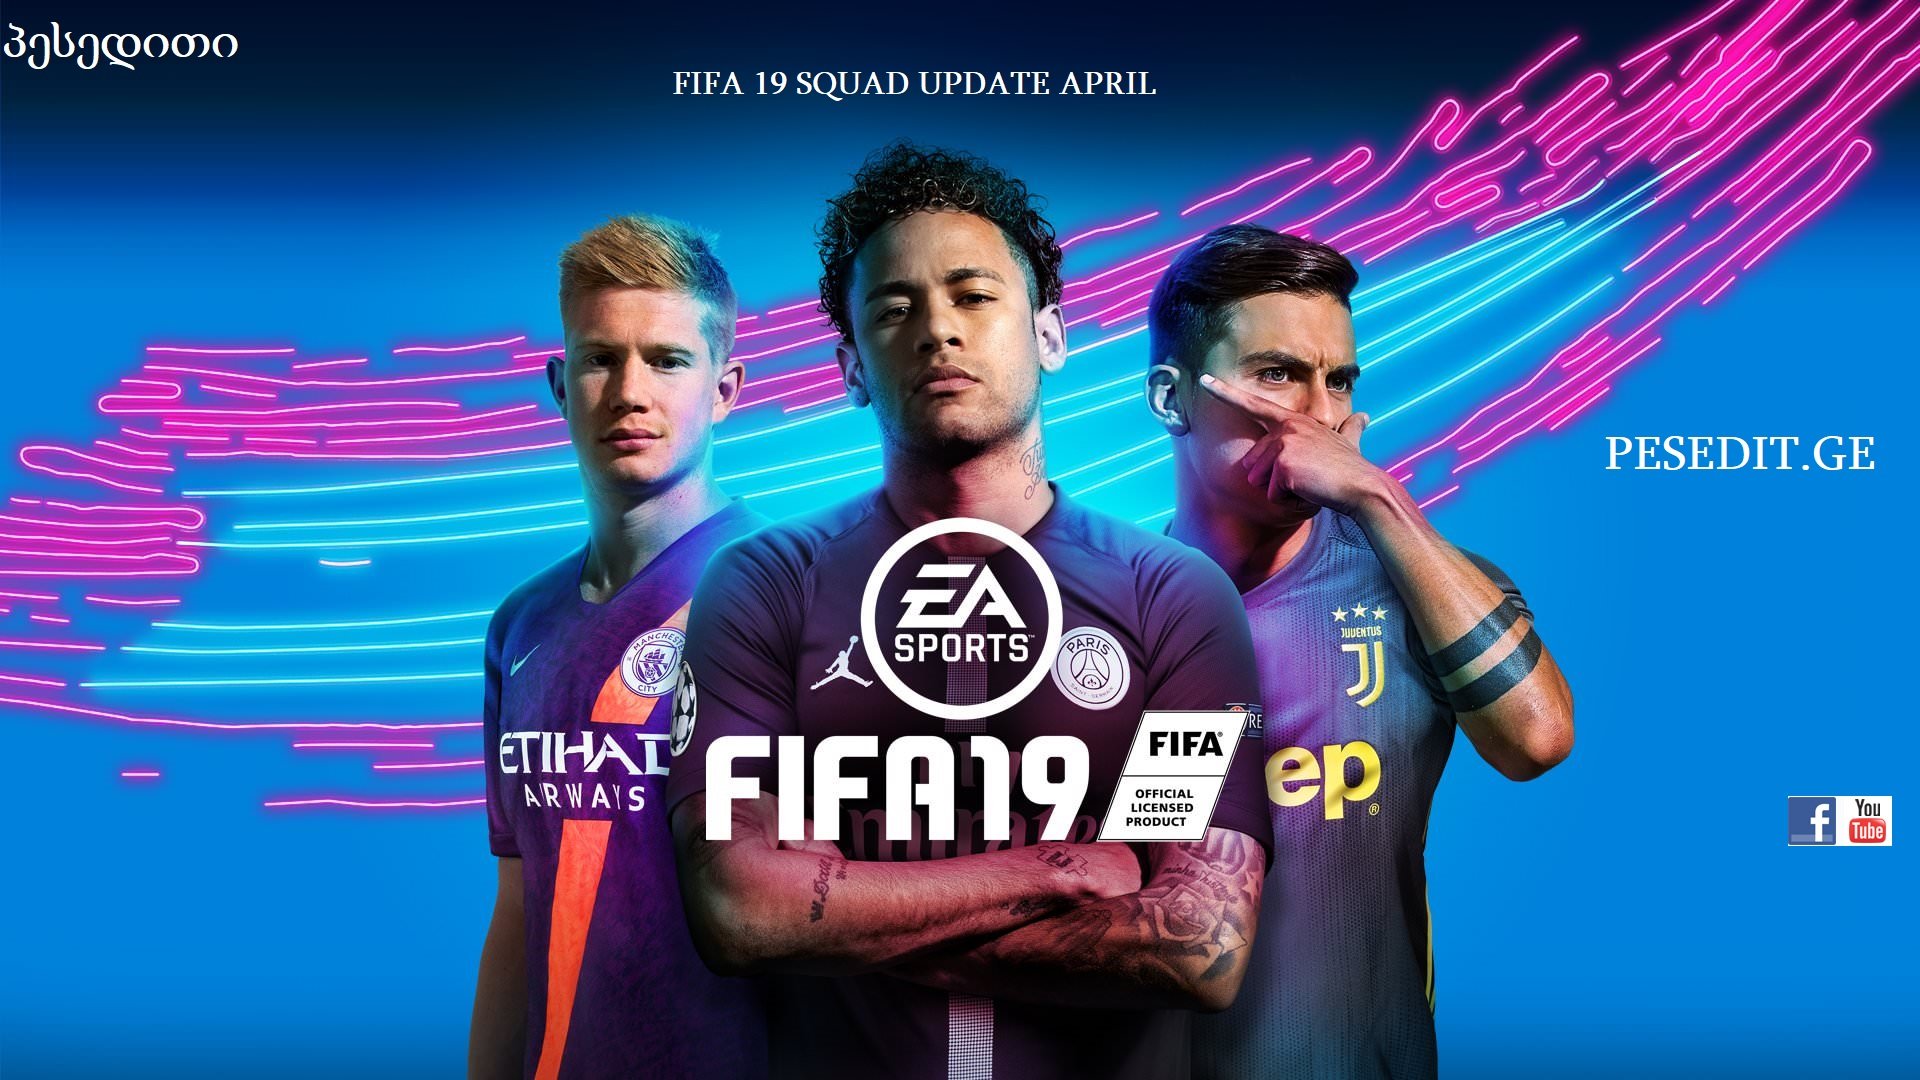 FIFA 19 SQUAD UPDATE APRIL